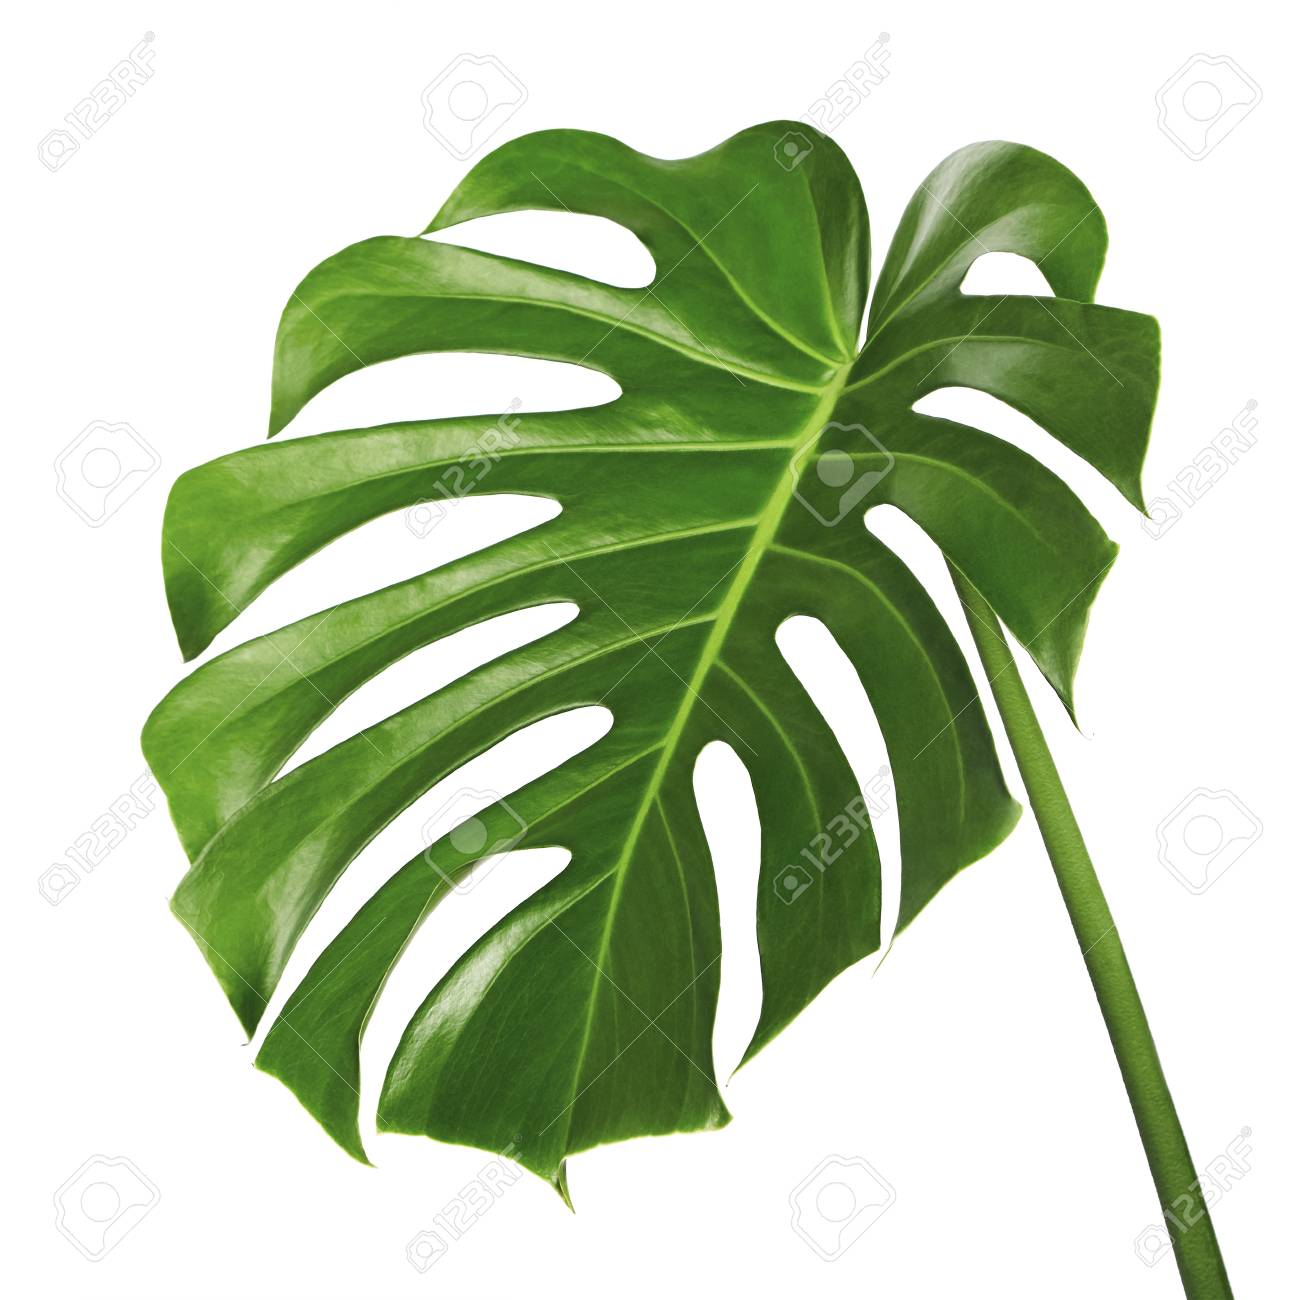 Monstera Deliciosa Leaf Or Swiss Cheese Plant Tropical Foliage Stock Photo Picture And Royalty Free Image Image 97651832